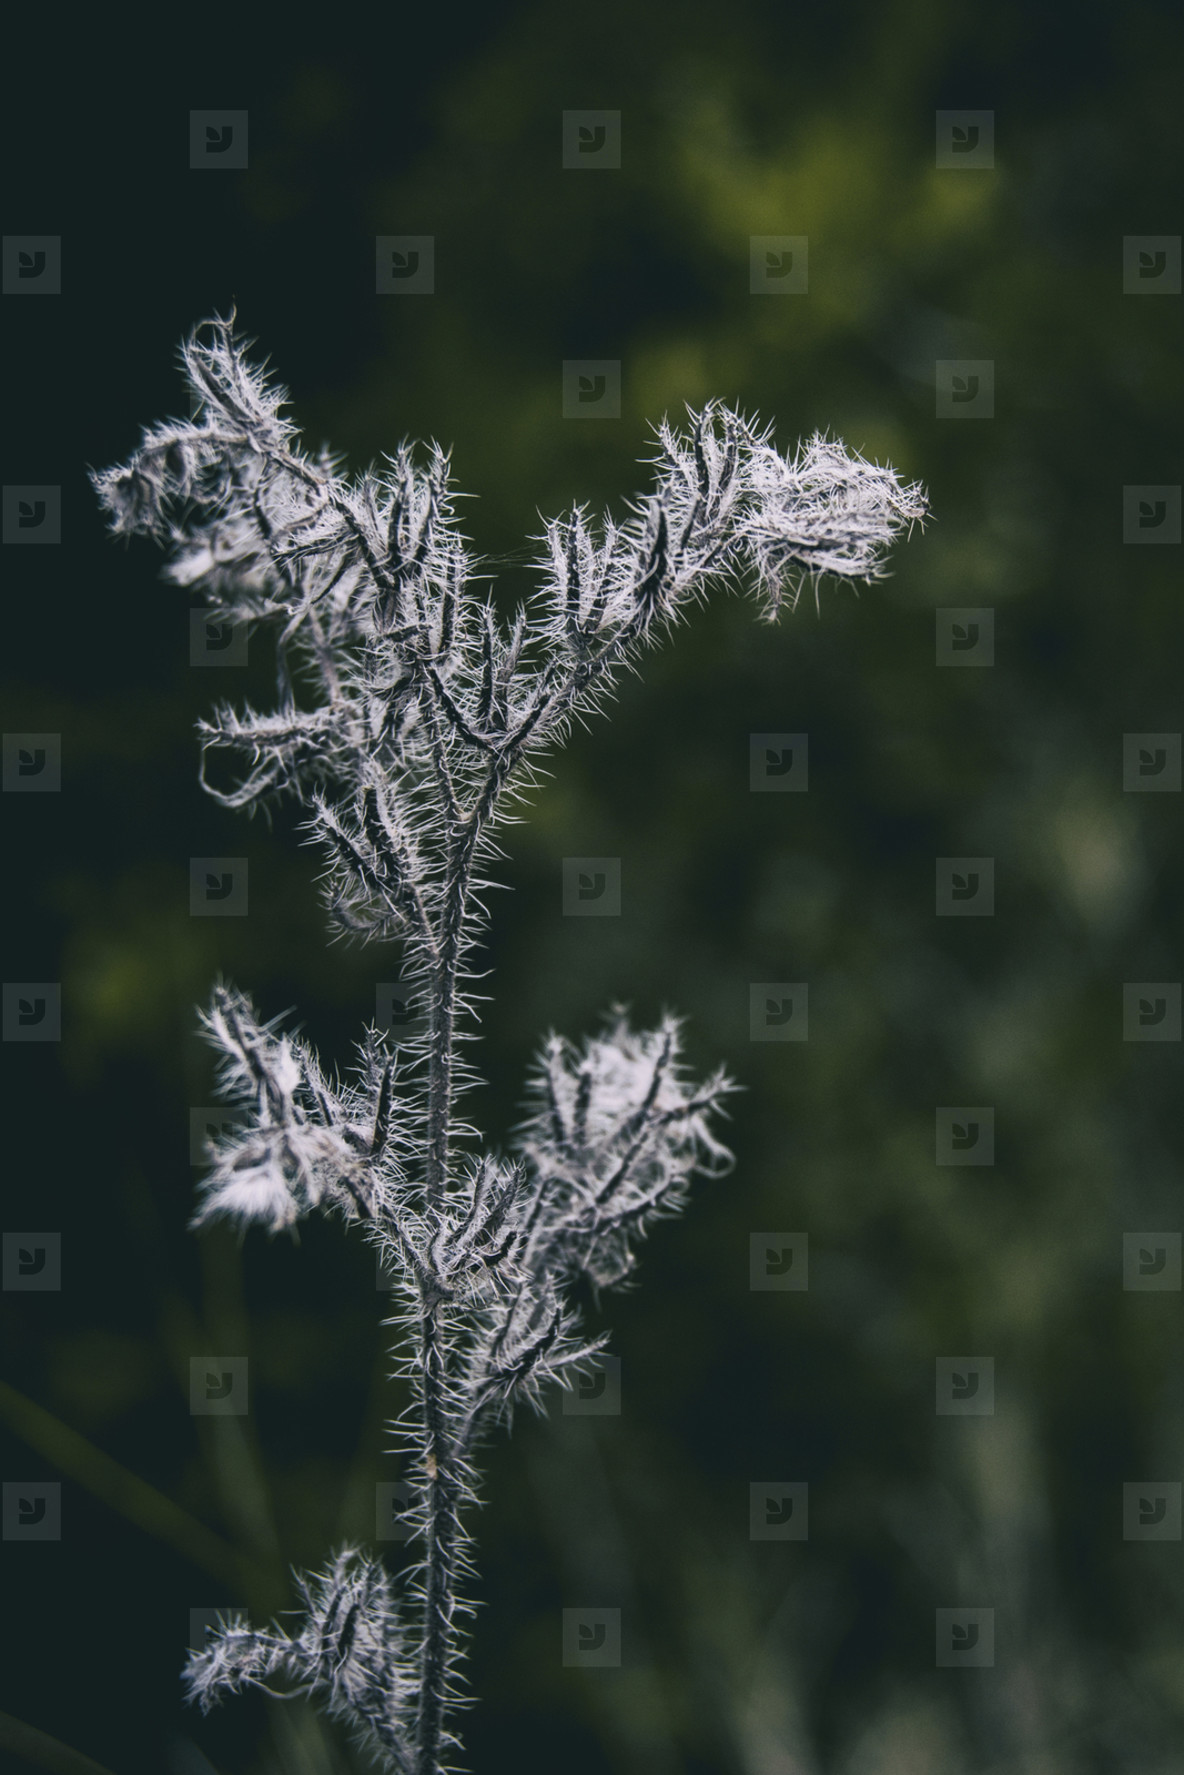 plant with white fluff seen close up in a field